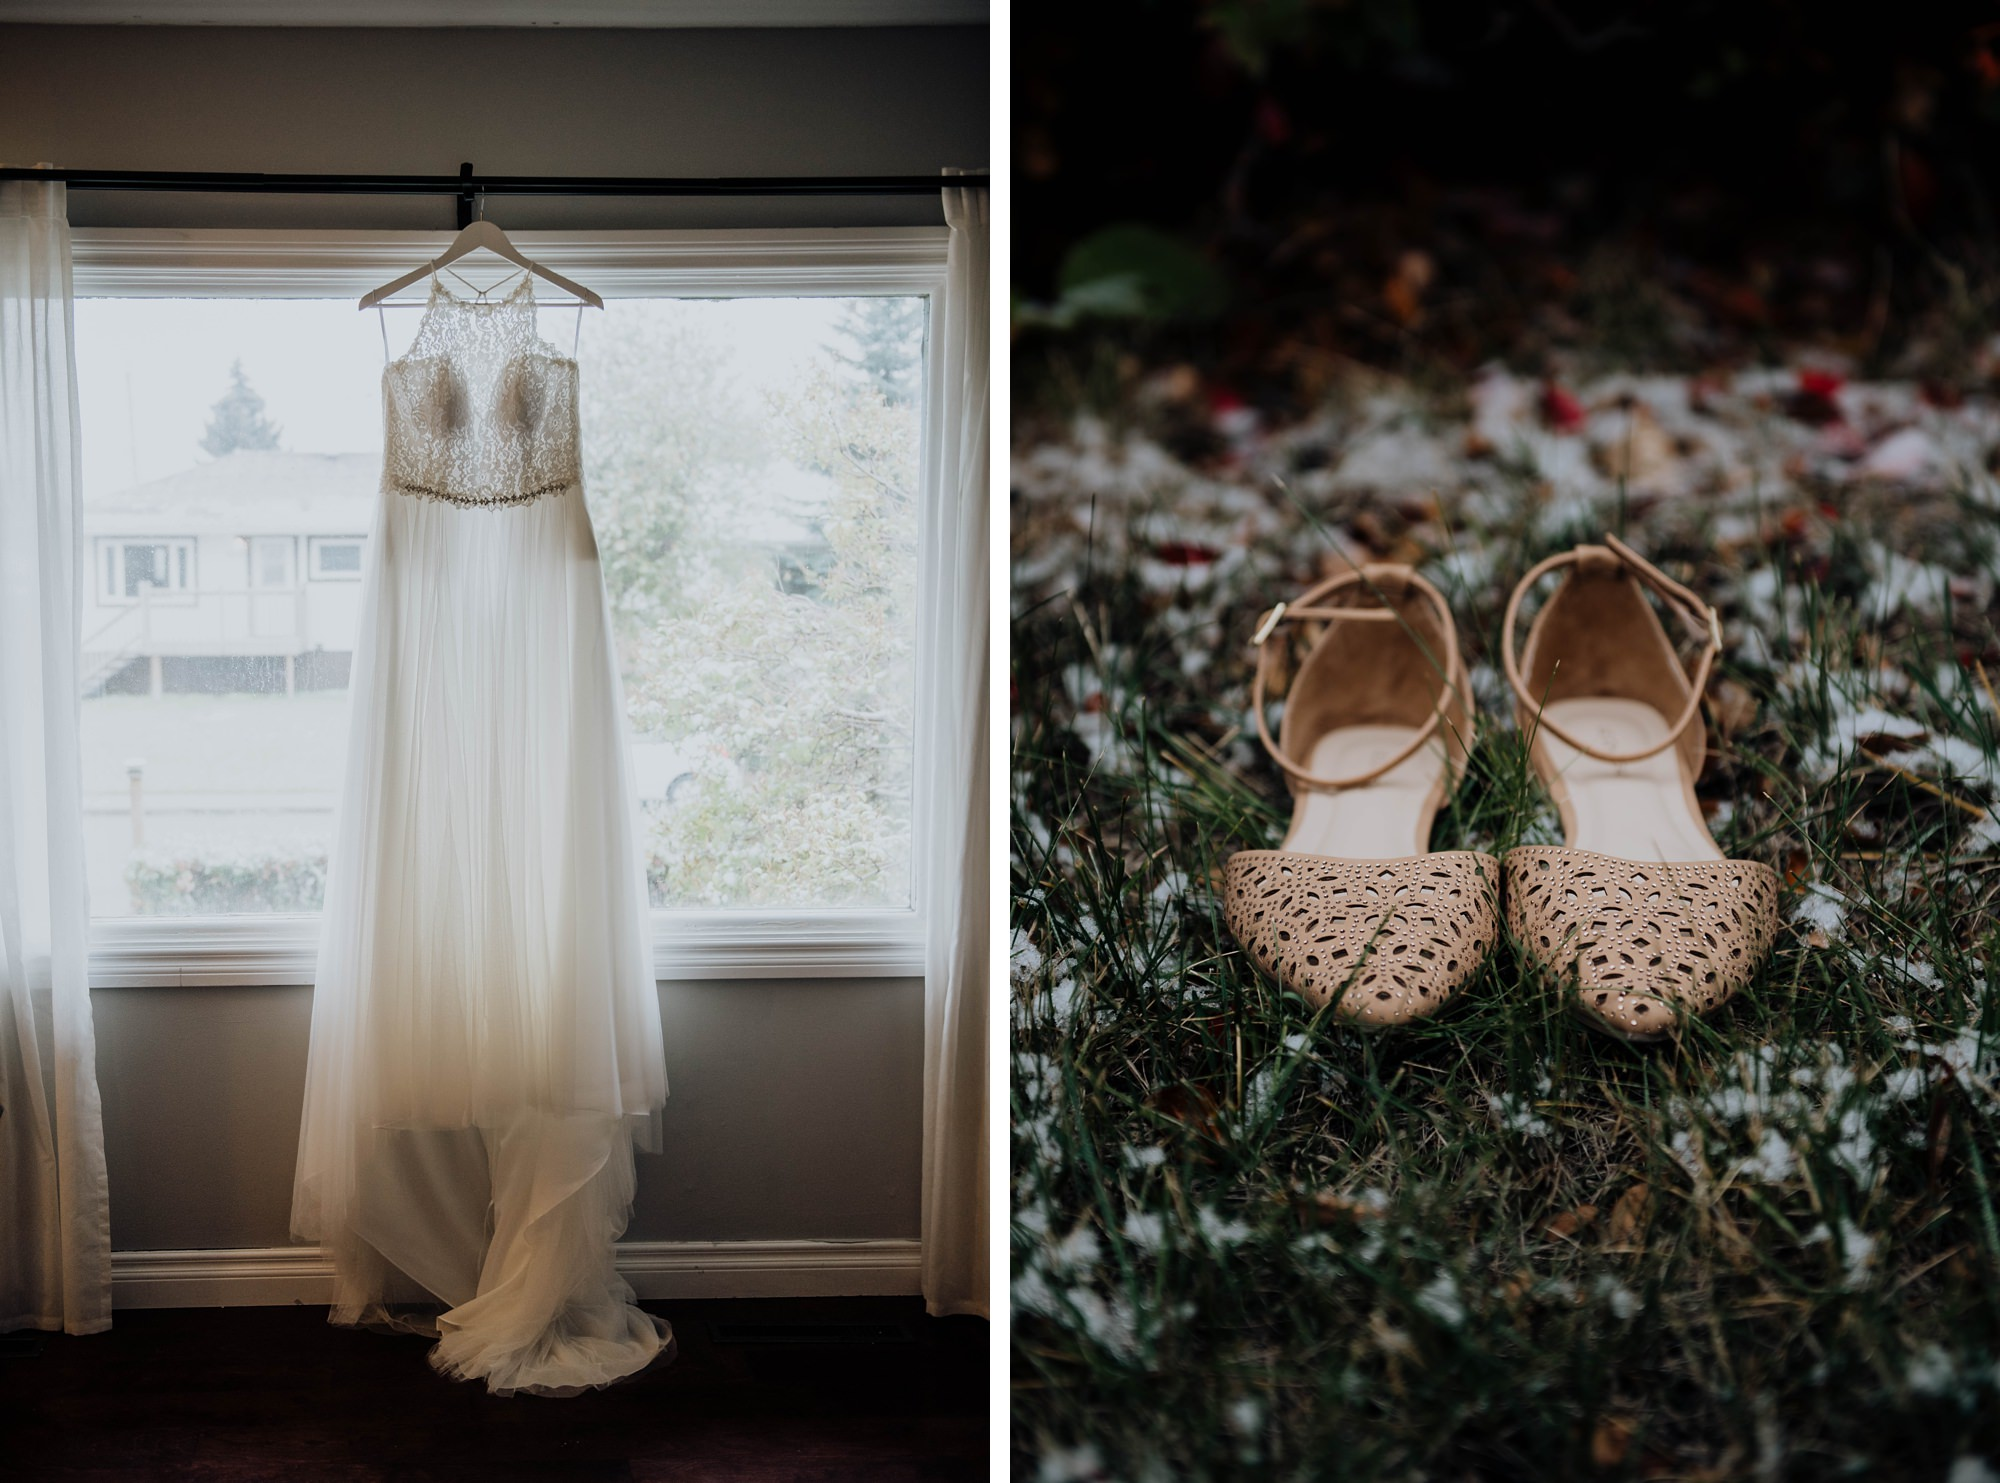 Calgary Wedding, Photographer, Calgary Golf Club Wedding, Calgary Wedding Photographer, Romantic Wedding Inspiration, Romantic Indoor Wedding, Calgary Indoor Wedding